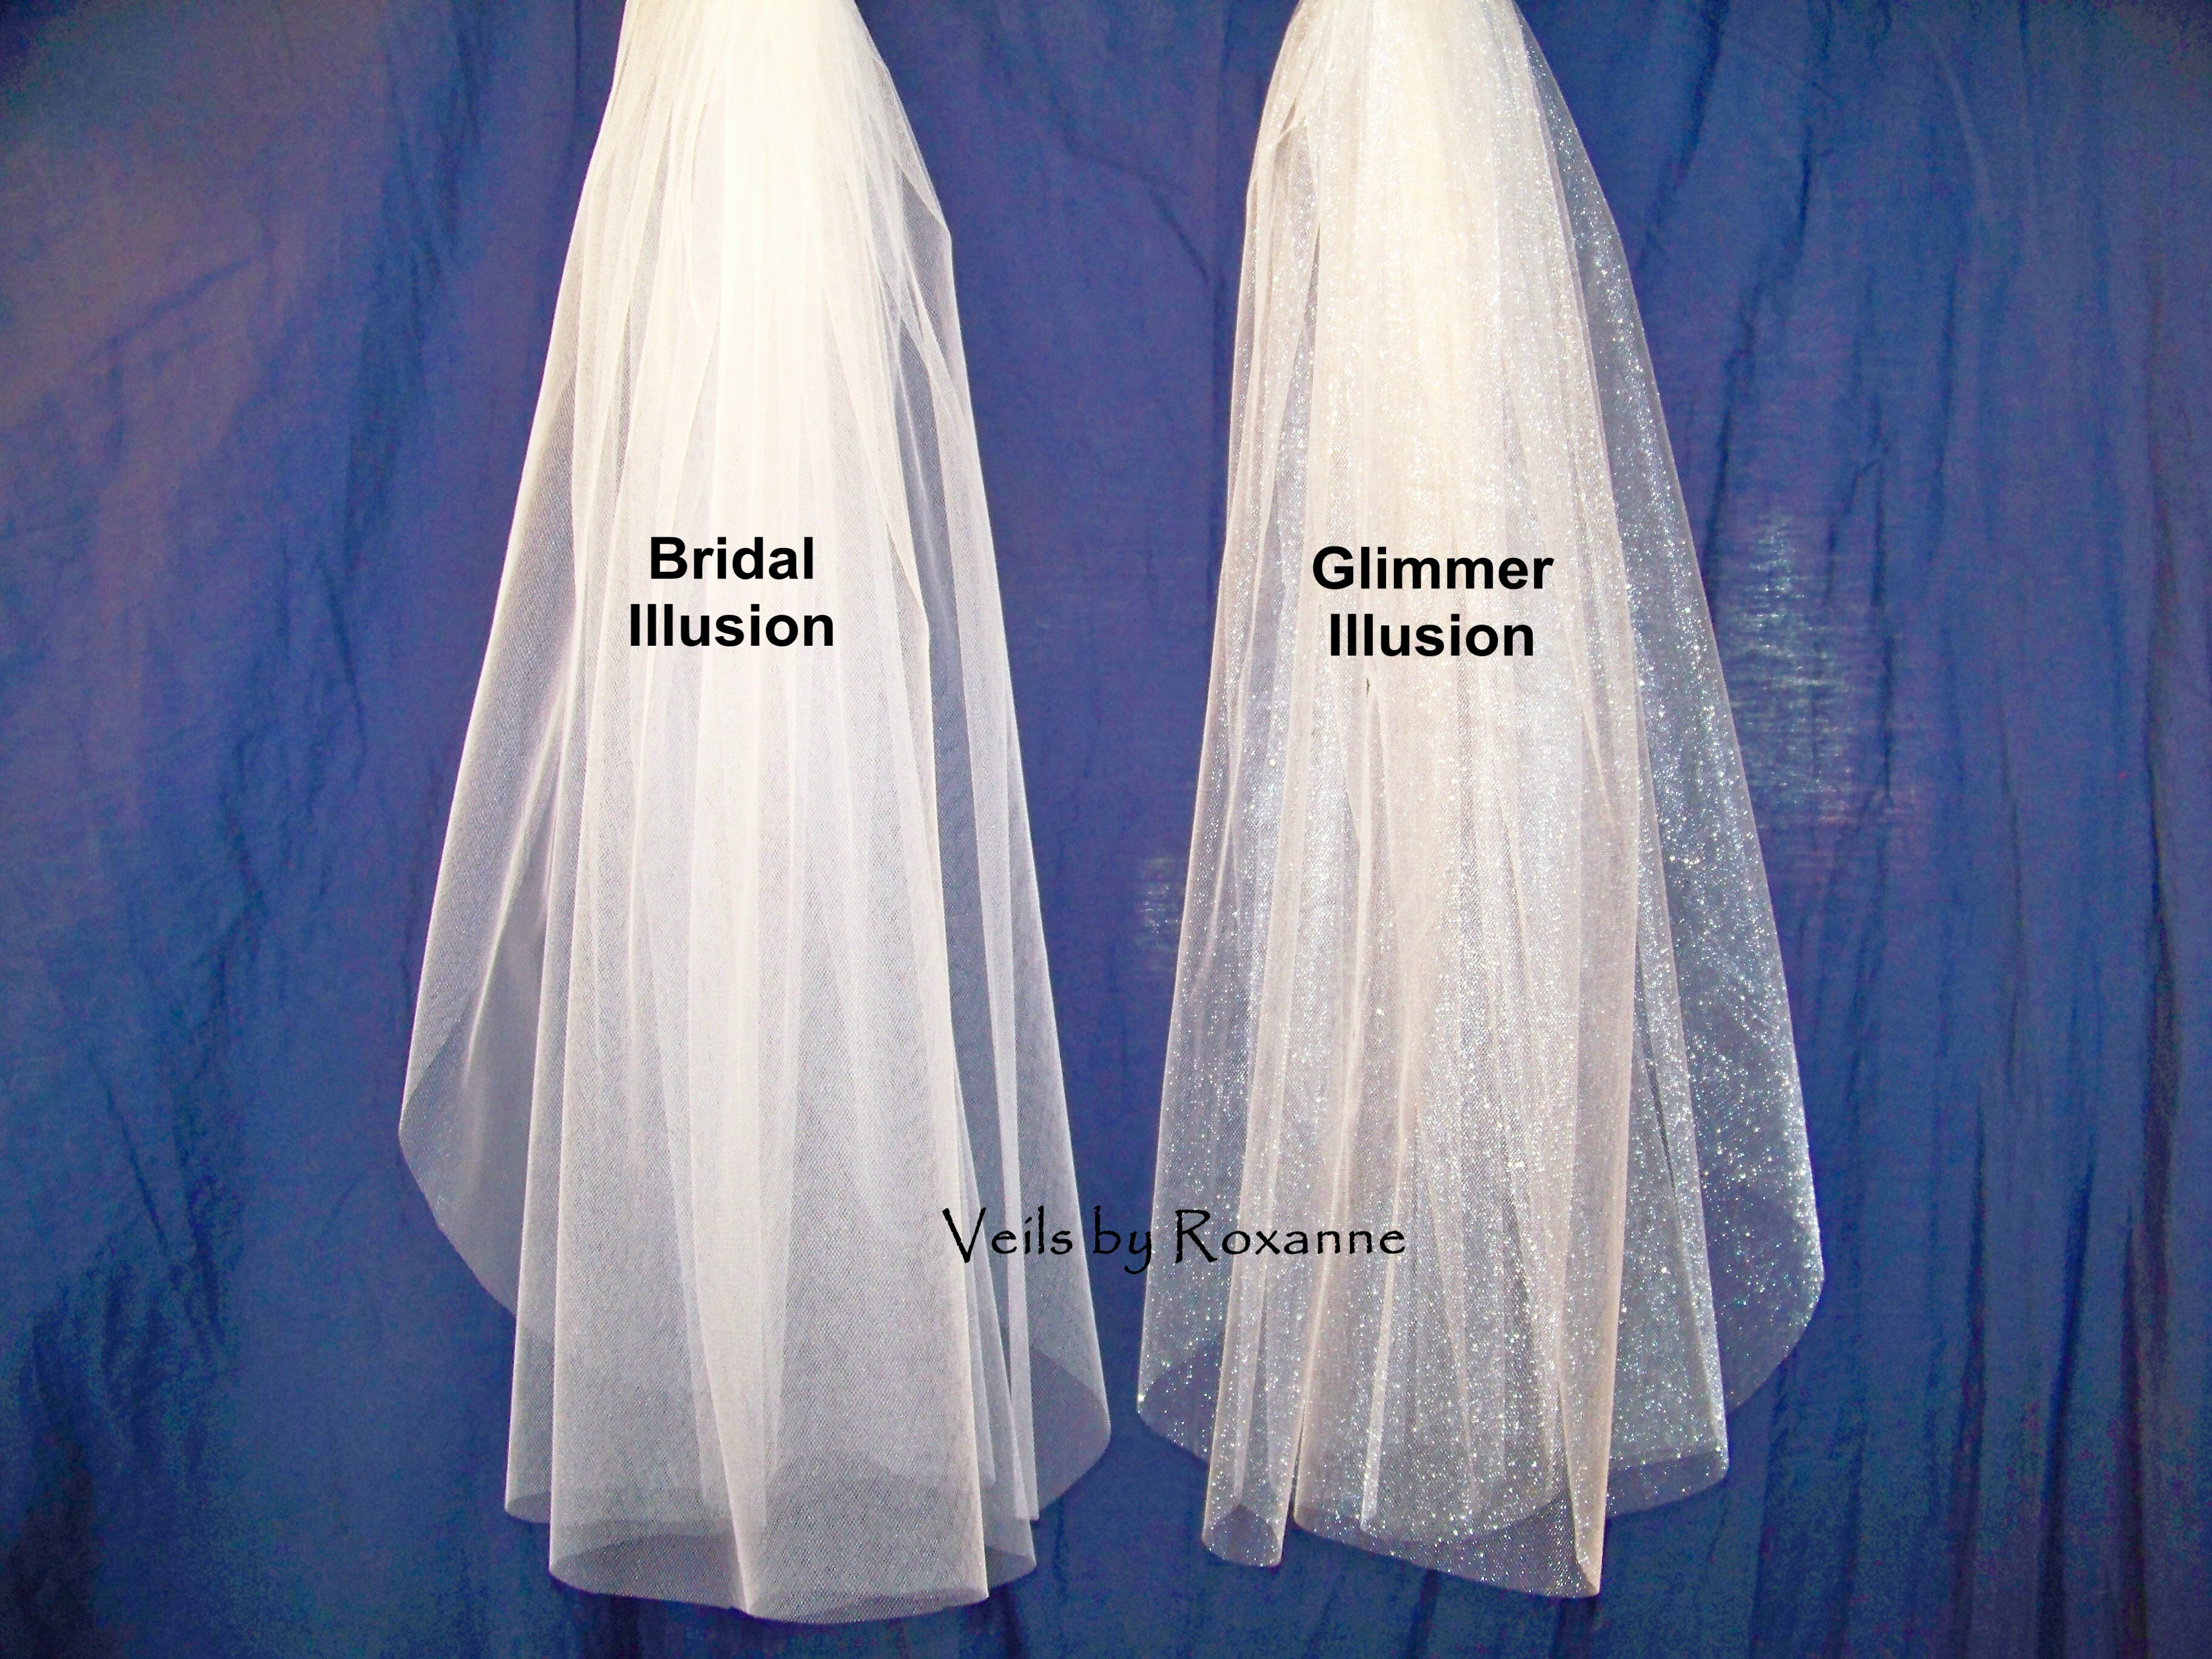 Bridal_Illusion_Glimmer_Illusion